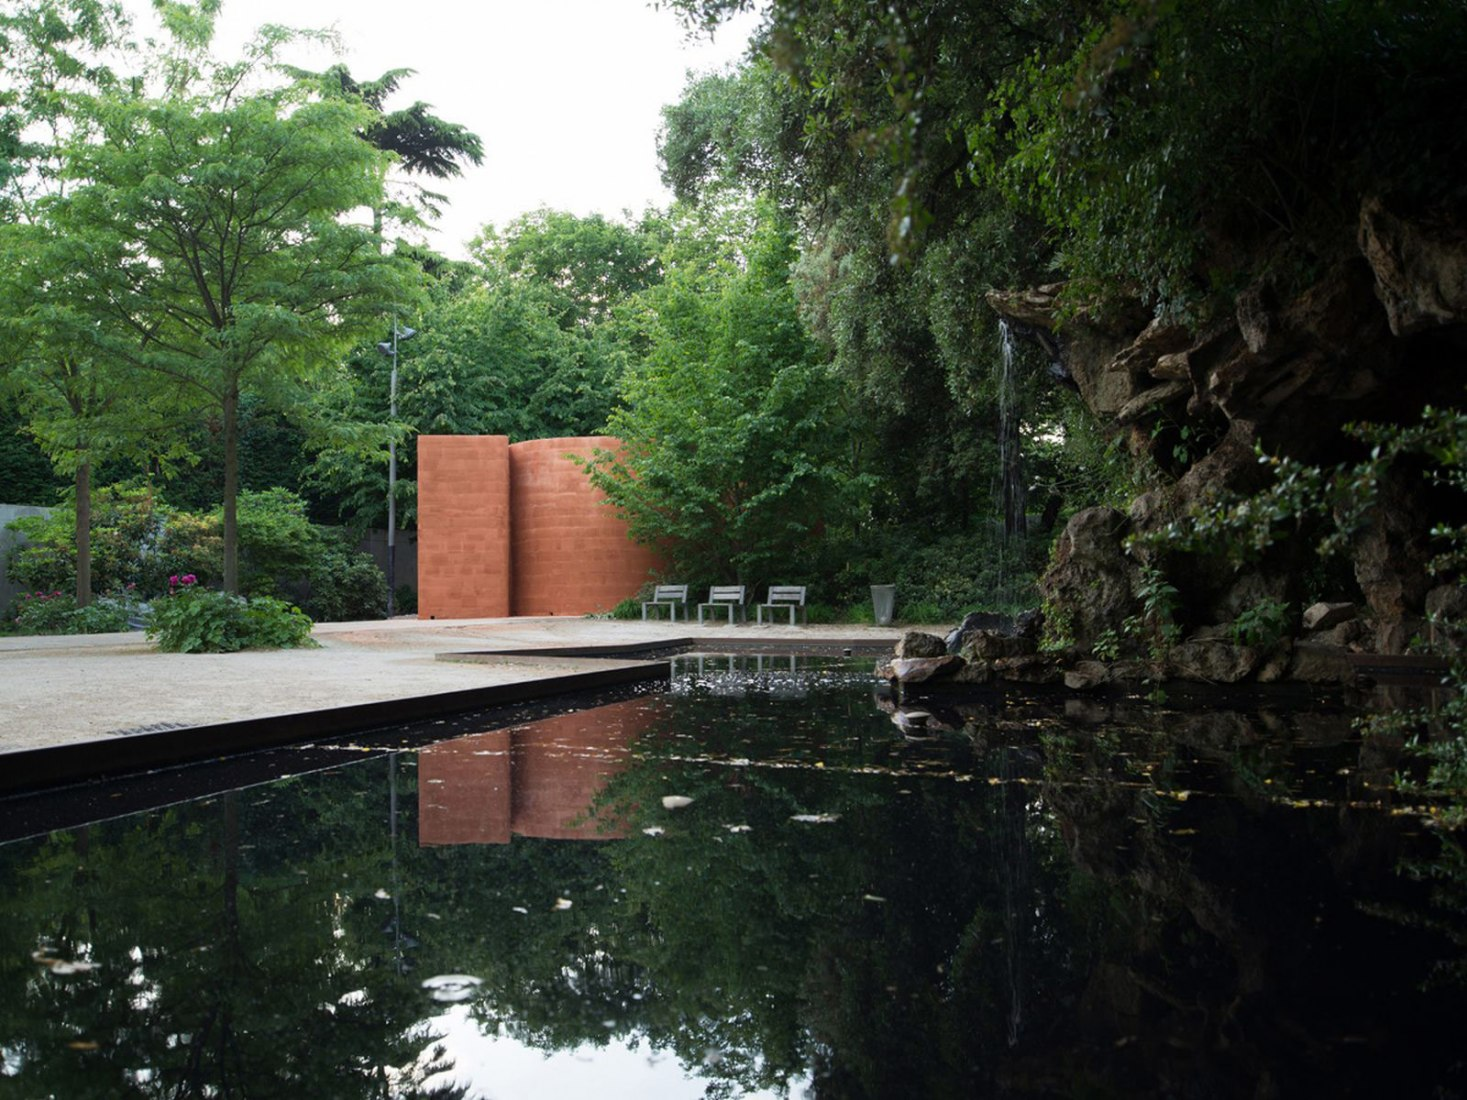 The pavilion Bell by Pezo Von Ellrichshausen and Christian Boltanski in the garden of the Musée d'Art Contemporain du Val-de-Marne in Vitry-sur-Seine. Photograph © Pezo von Ellrichshausen